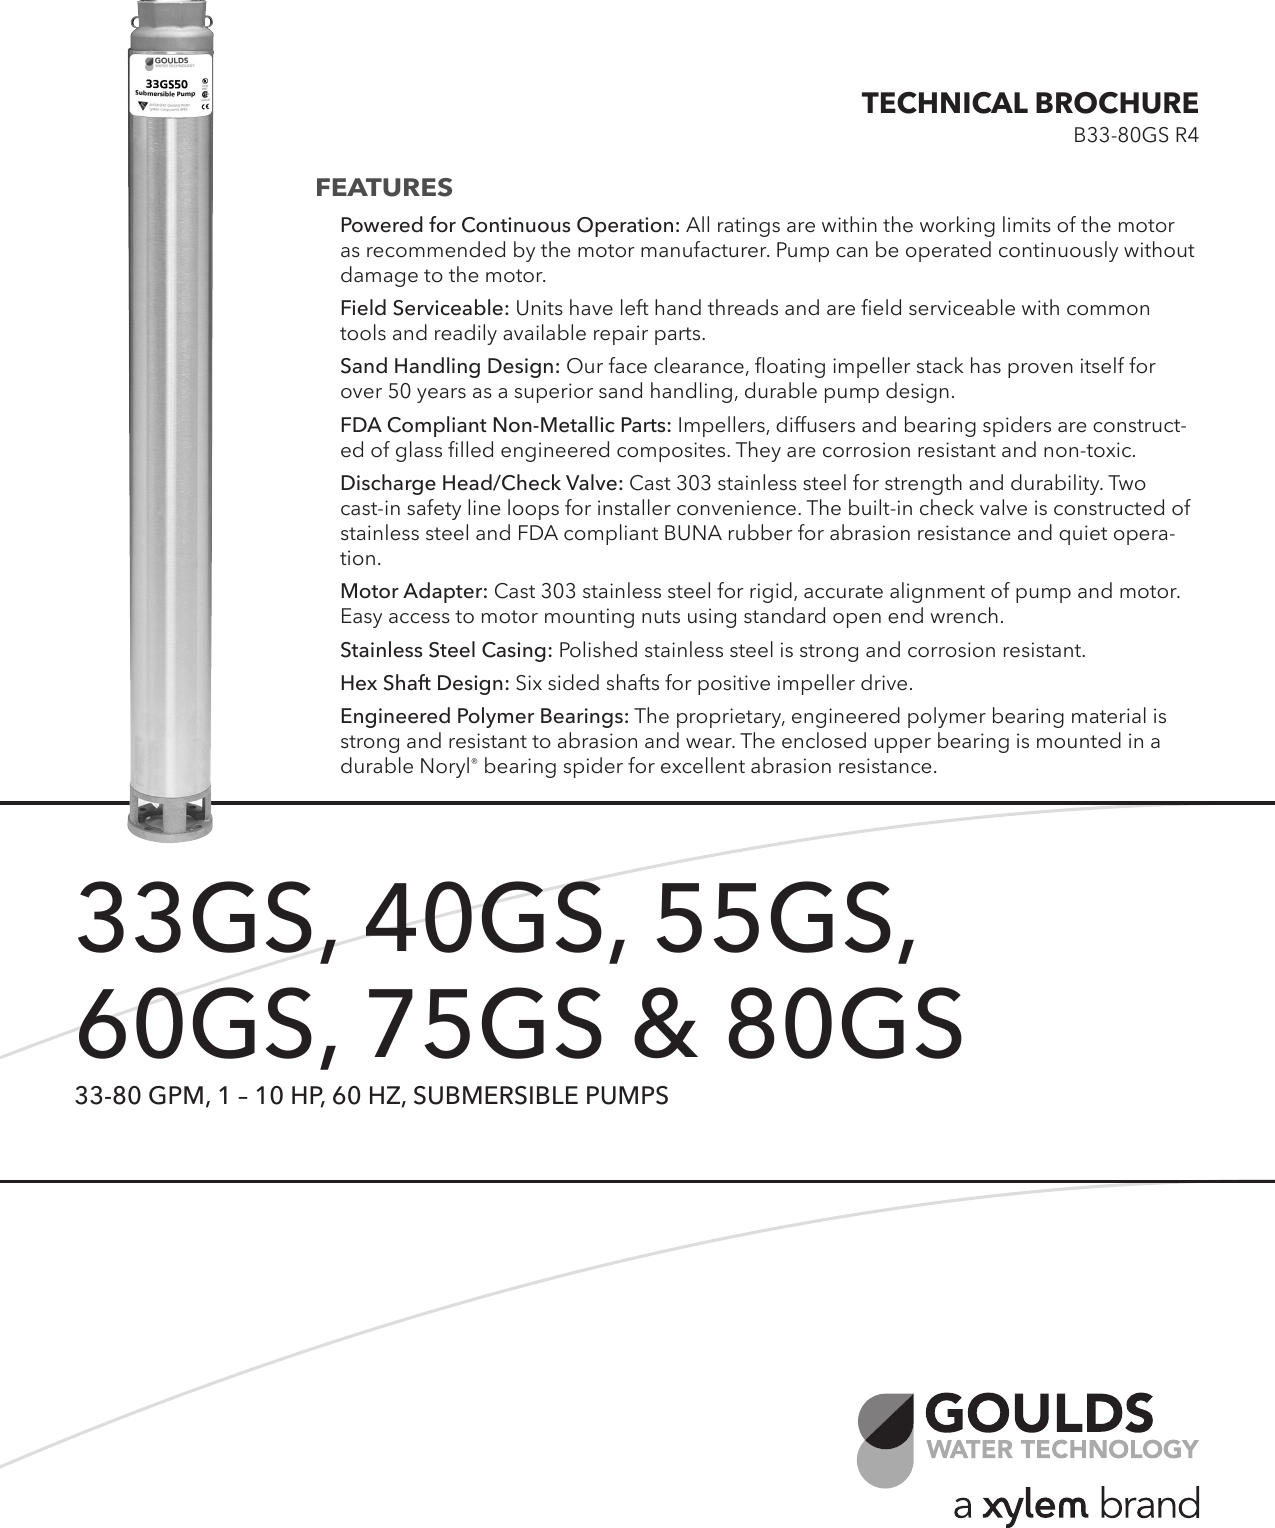 539444 1 Goulds GS Series (33 80 GPM) Submersible Pump Brochure